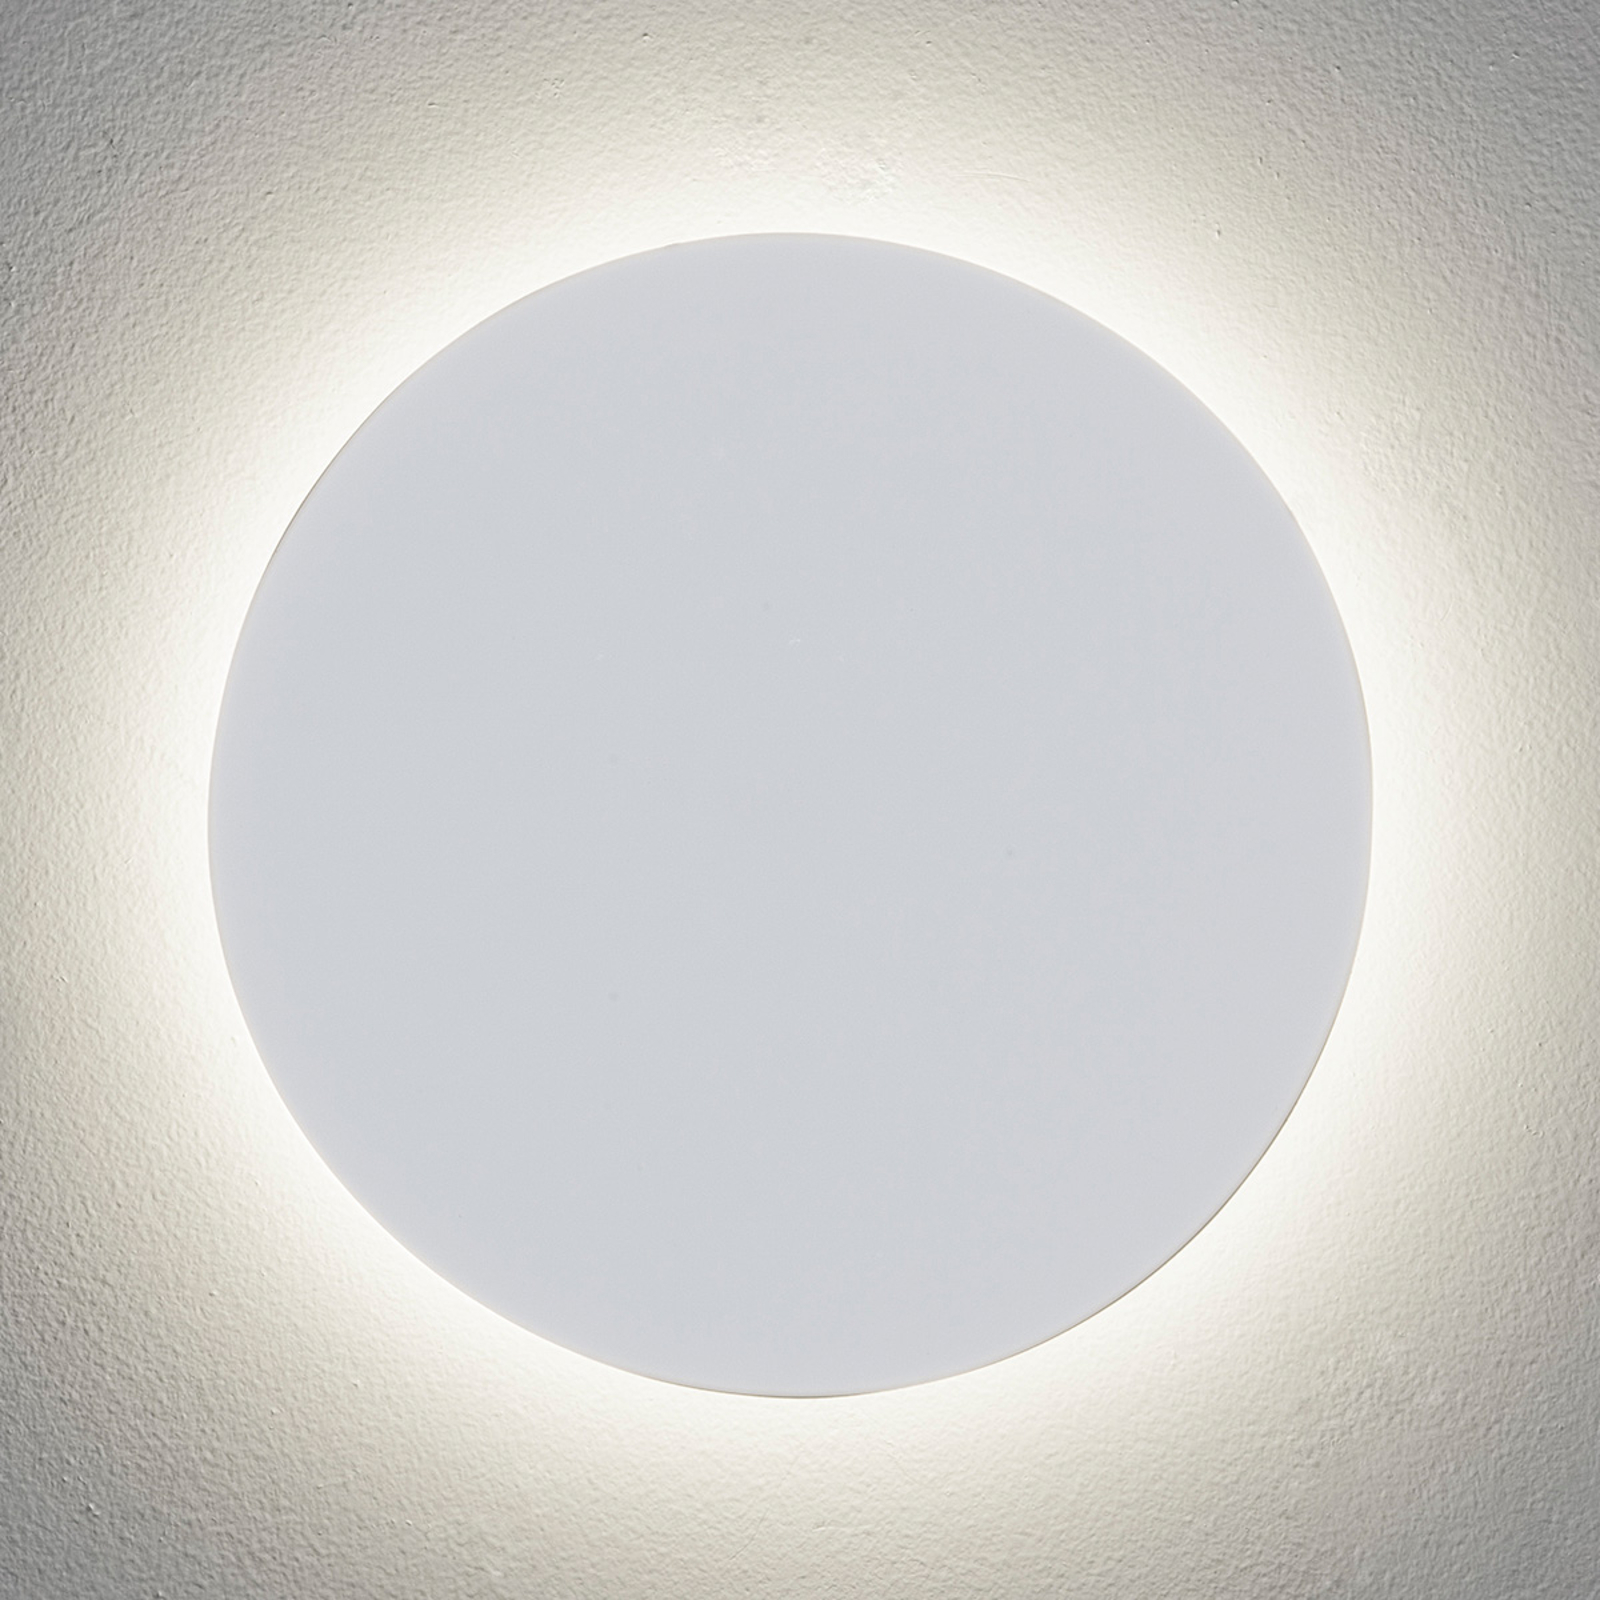 Eclipse Round LED wall light with fantastic effect_1020525_1